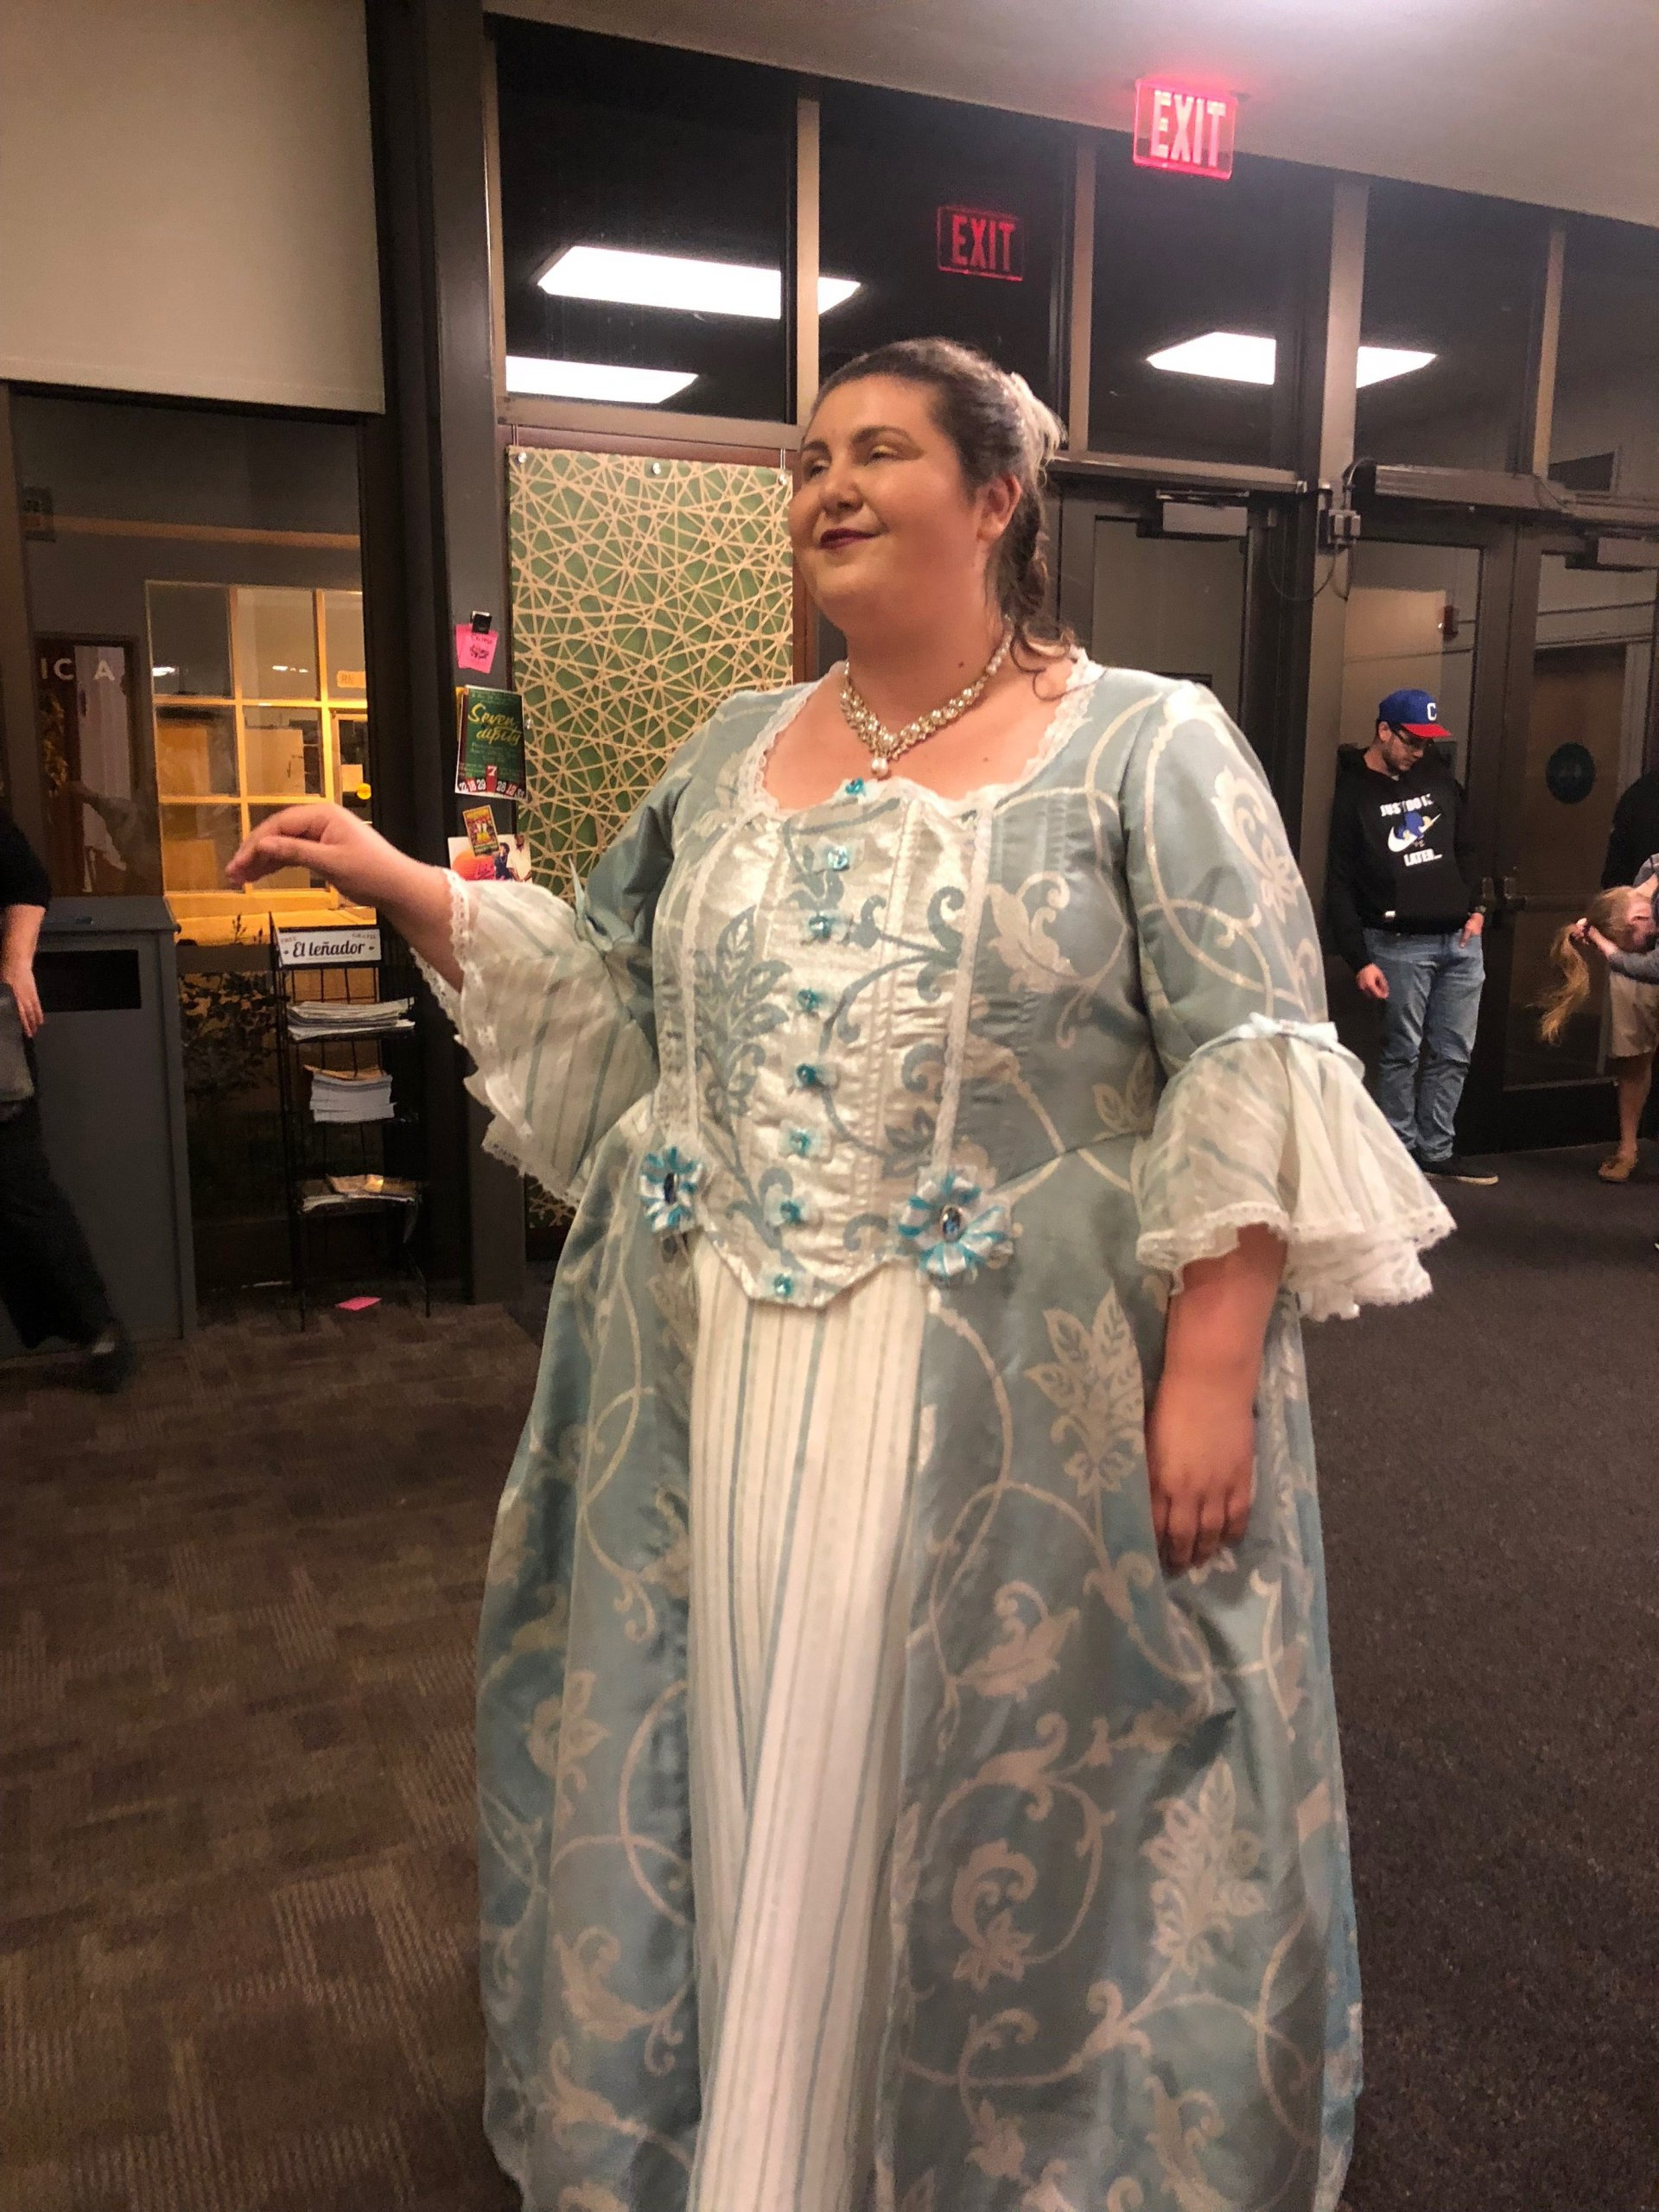 HSU student Helen Kimber after the performance, showing off her gorgeous gown that she wore during the final act on April 27. | Photo by Skylar Gaven